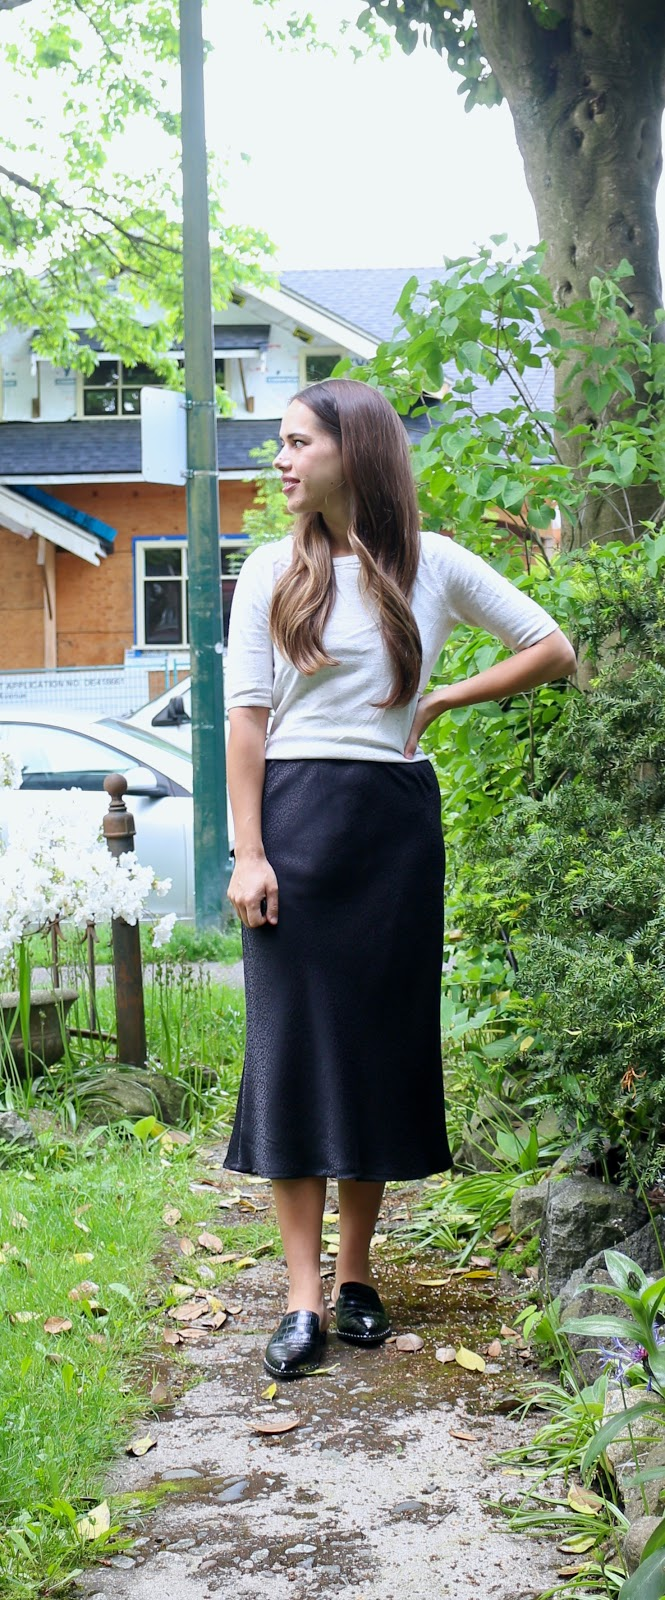 Jules in Flats - Midi Skirt & Sweater (Easy Work from Home Outfit)